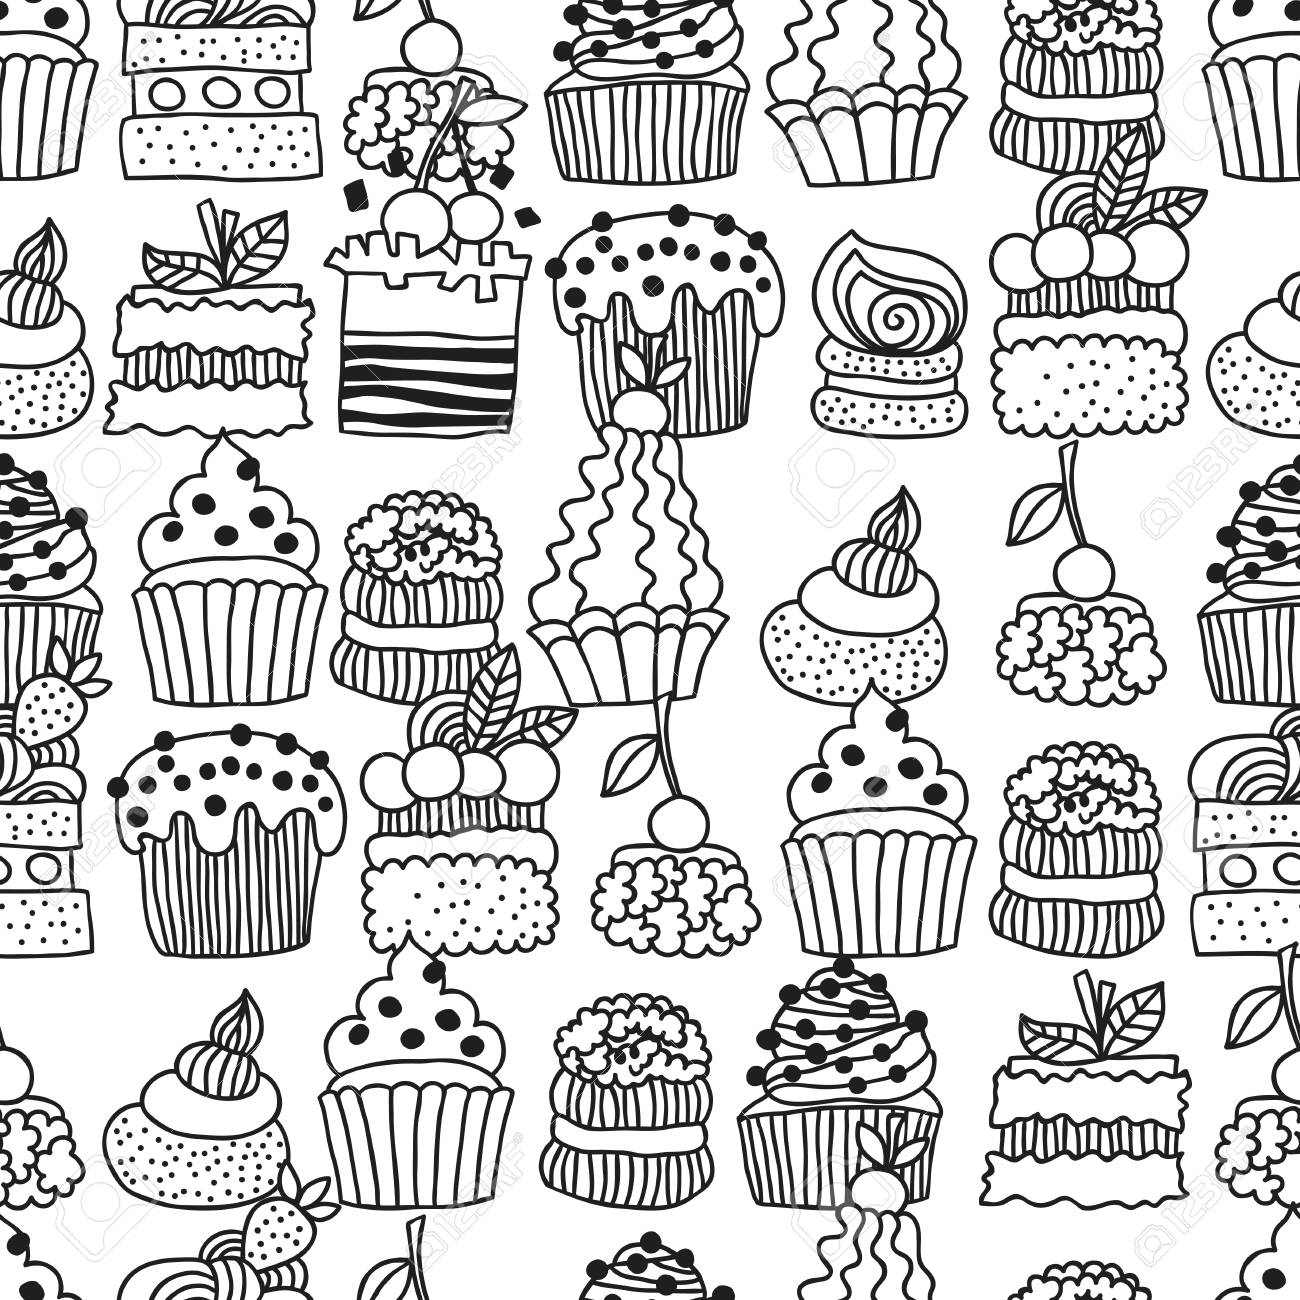 Sweet Cakes Cupcakes Black And White Seamless Pattern With Dessert For Coloring Books Doodle Illustration Vector Royalty Free Cliparts Vectors And Stock Illustration Image 80112150